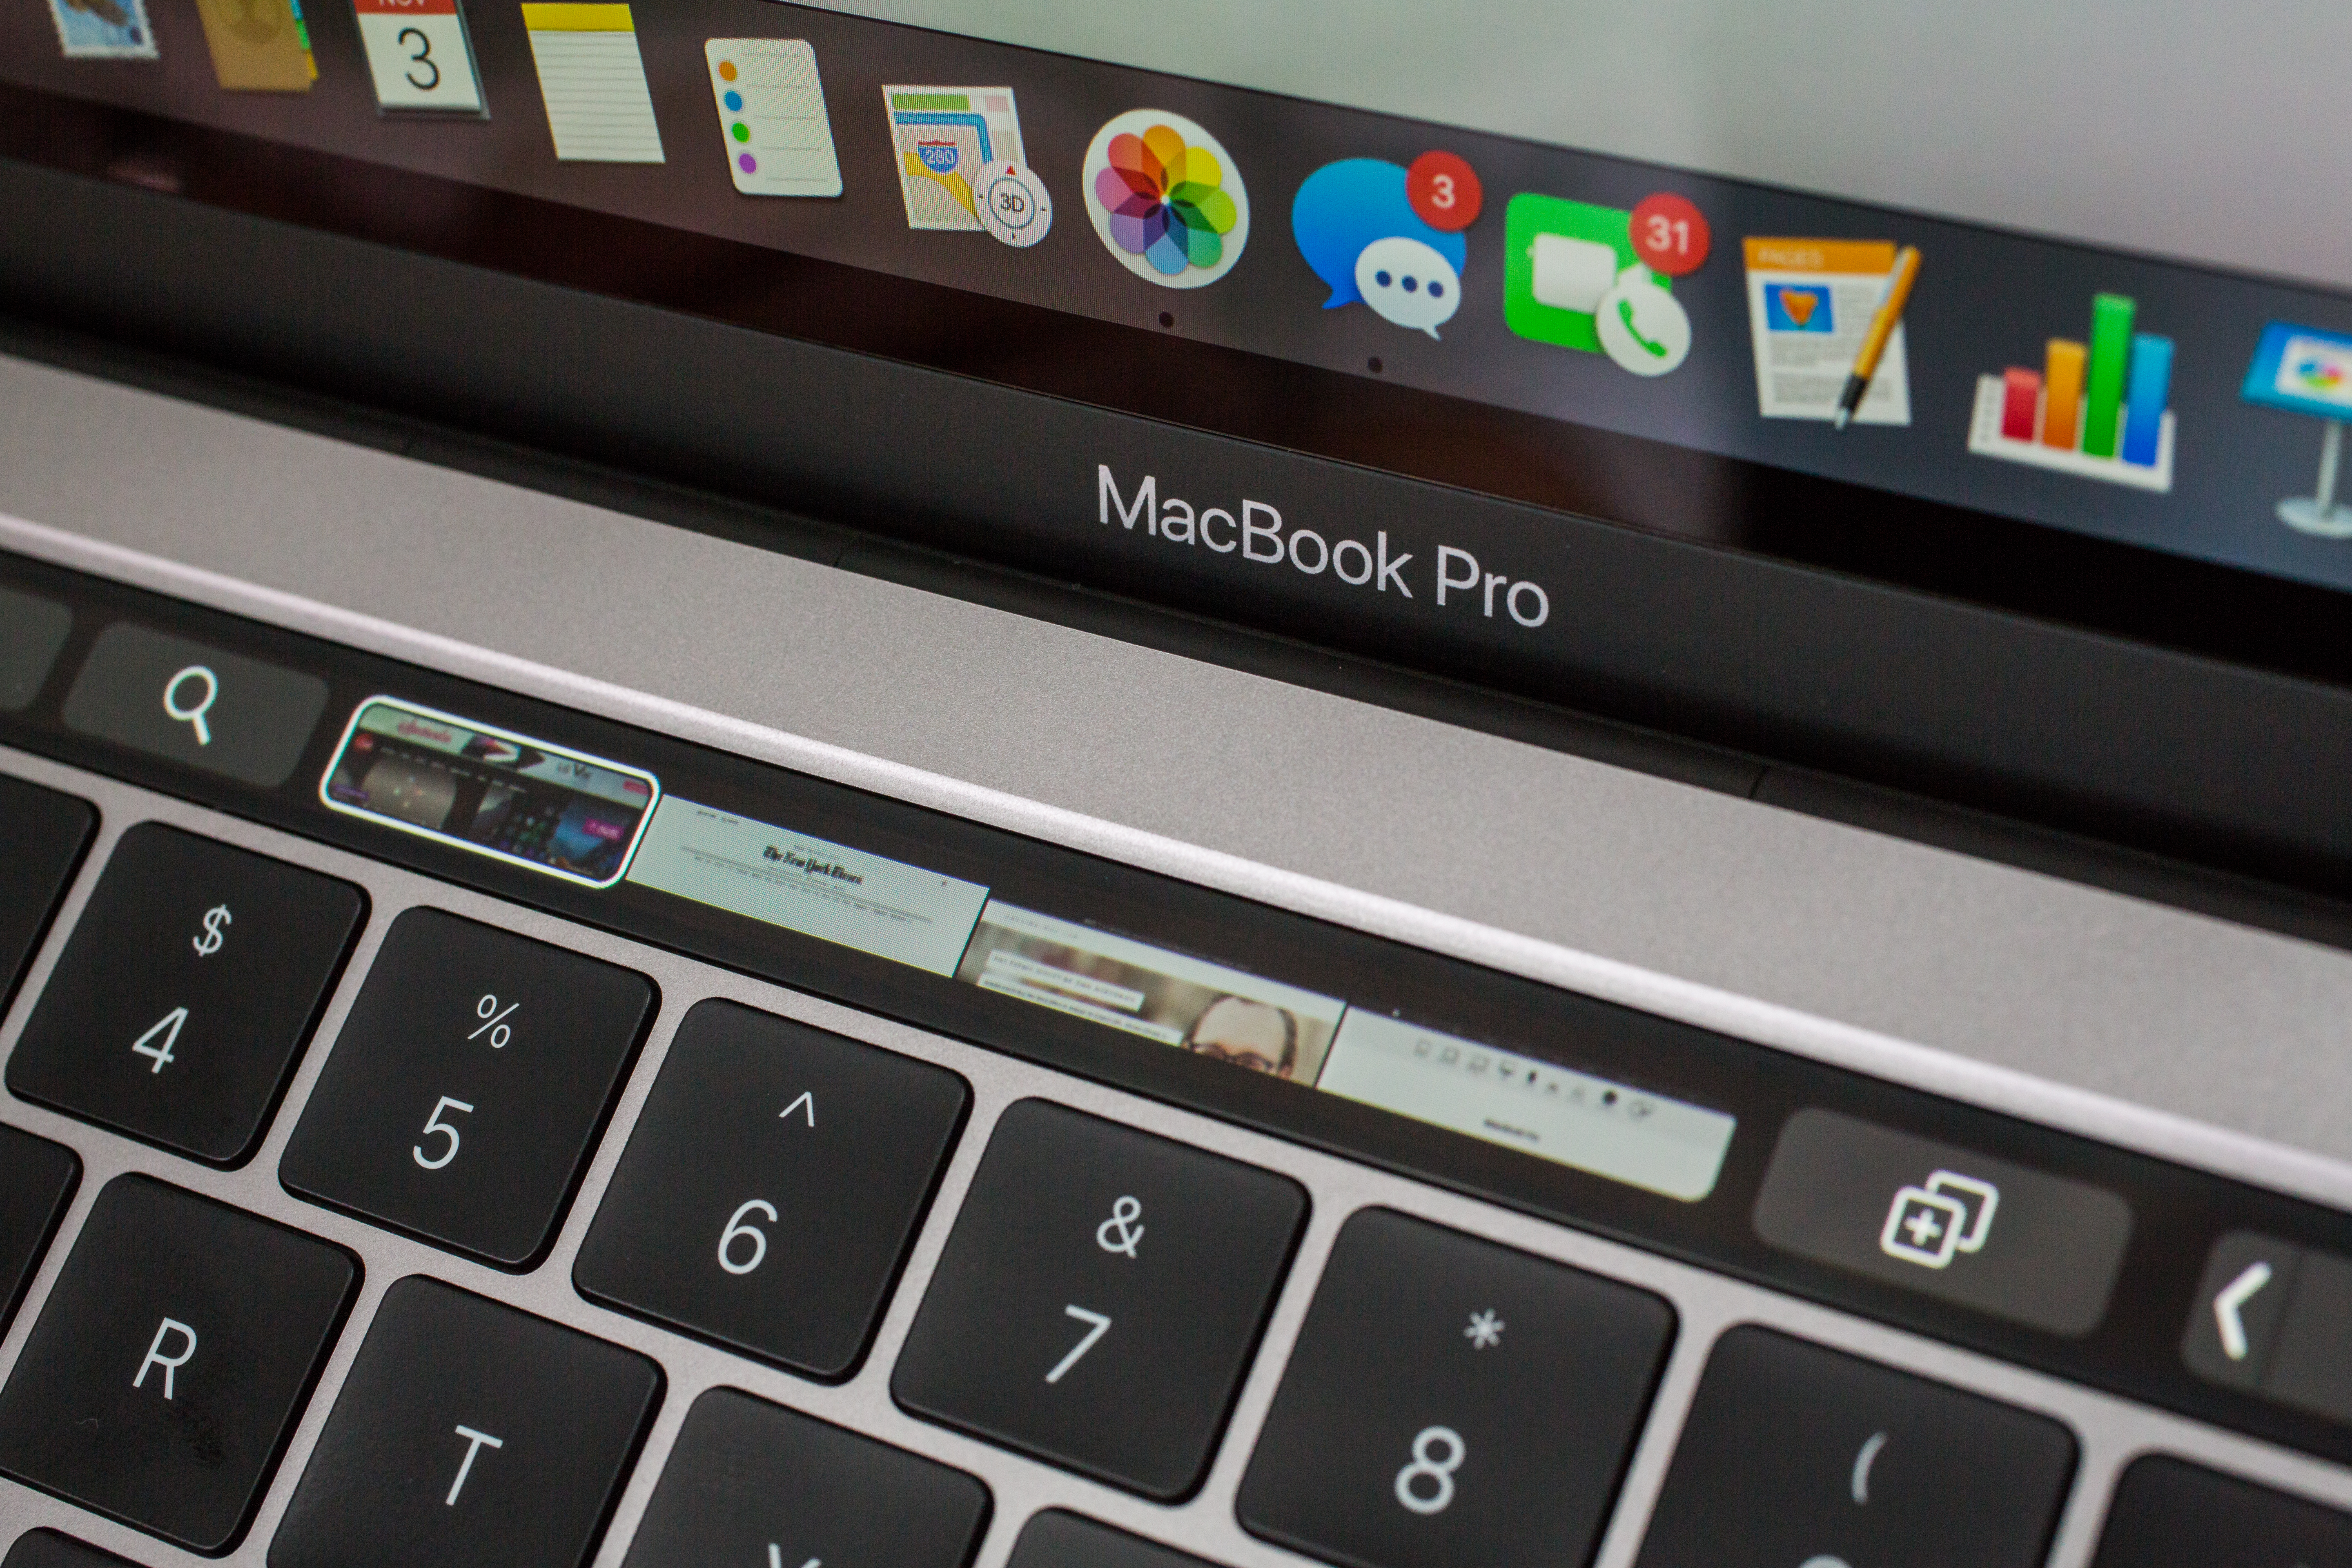 apple-macbook-pro-with-touch-bar-13-inch-2016-10.jpg